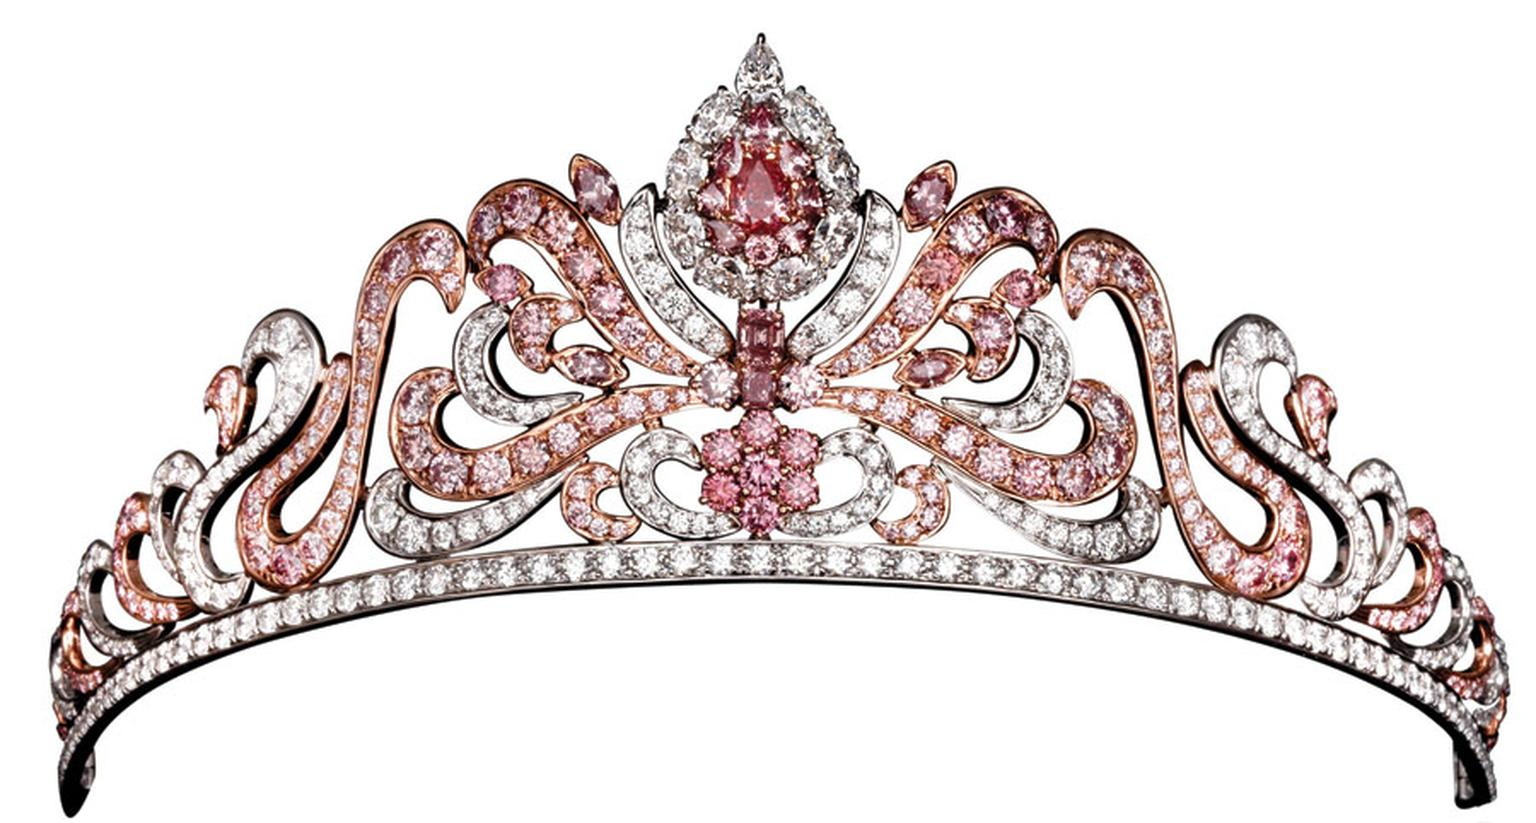 Argyle-pink-diamond-tiara